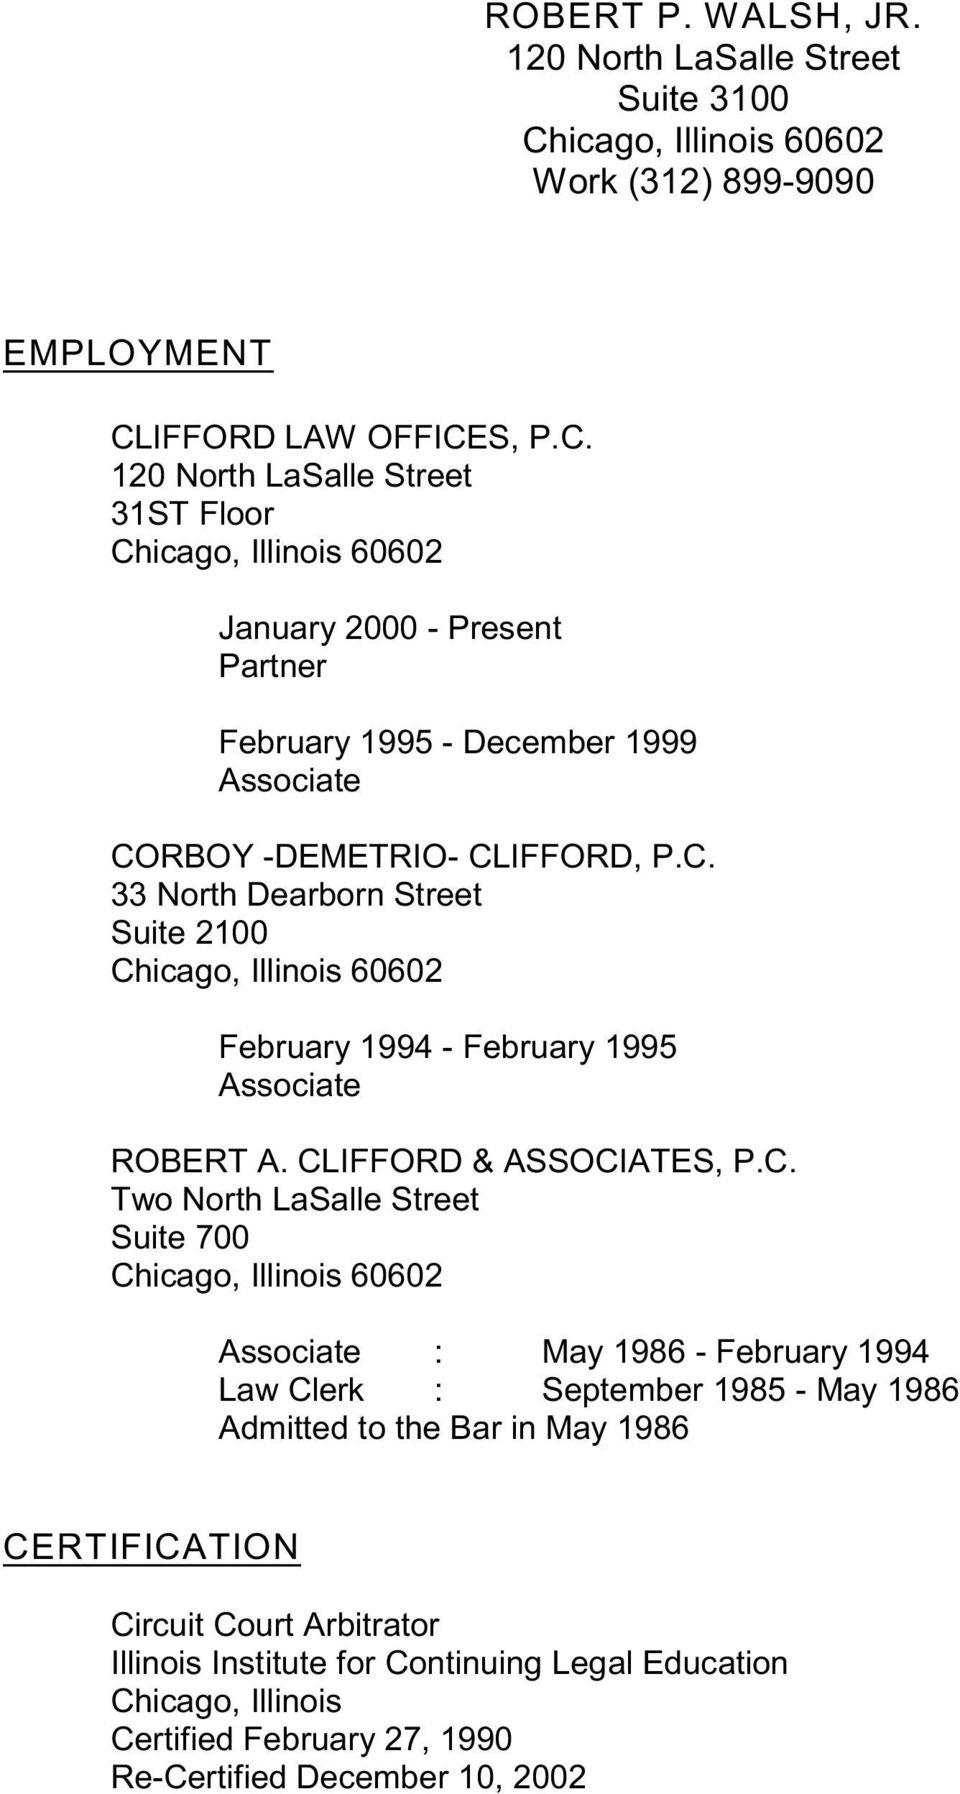 IFFORD LAW OFFICES, P.C. 120 North LaSalle Street 31ST Floor Chicago, Illinois 60602 January 2000 - Present Partner February 1995 - December 1999 Associate CORBOY -DEMETRIO- CLIFFORD, P.C. 33 North Dearborn Street Suite 2100 Chicago, Illinois 60602 February 1994 - February 1995 Associate ROBERT A.